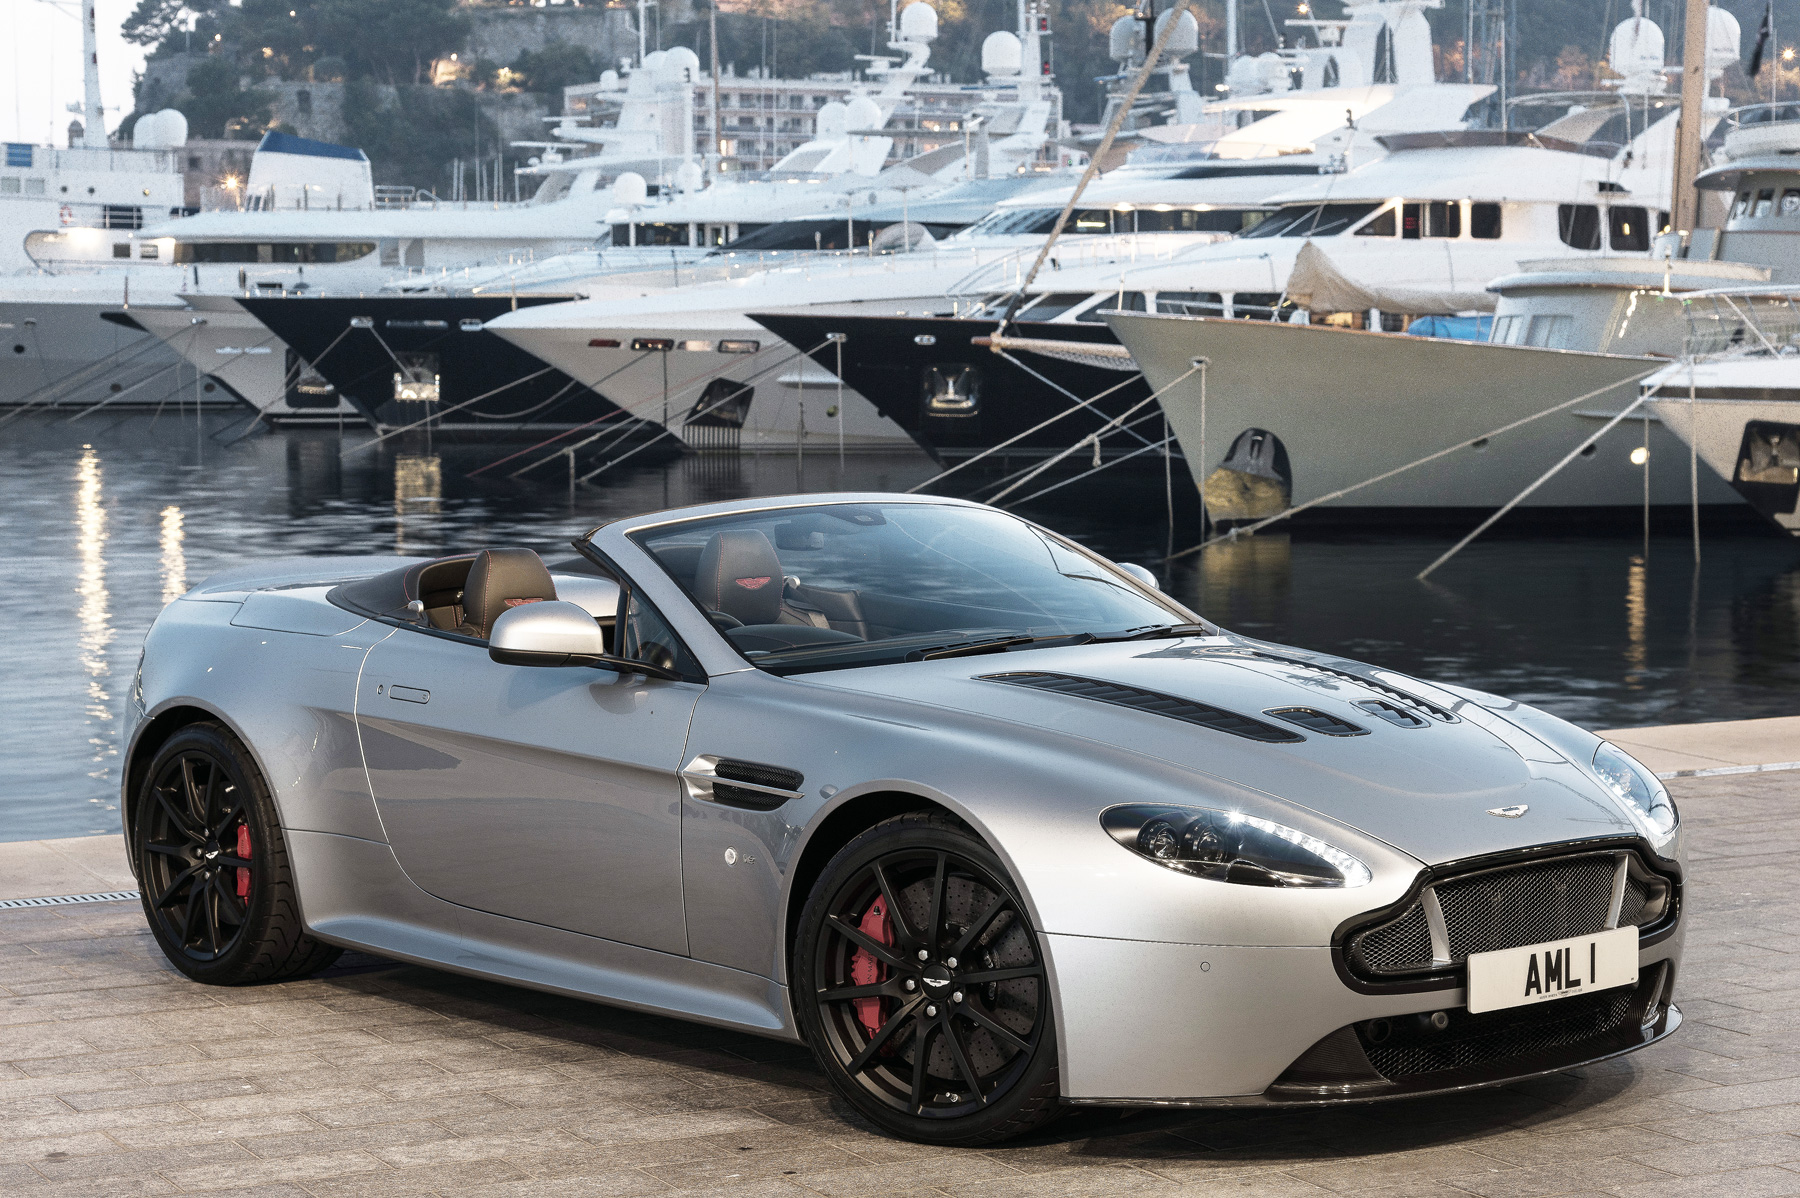 aston martin v12 vantage s roadster road test in nice france. Black Bedroom Furniture Sets. Home Design Ideas